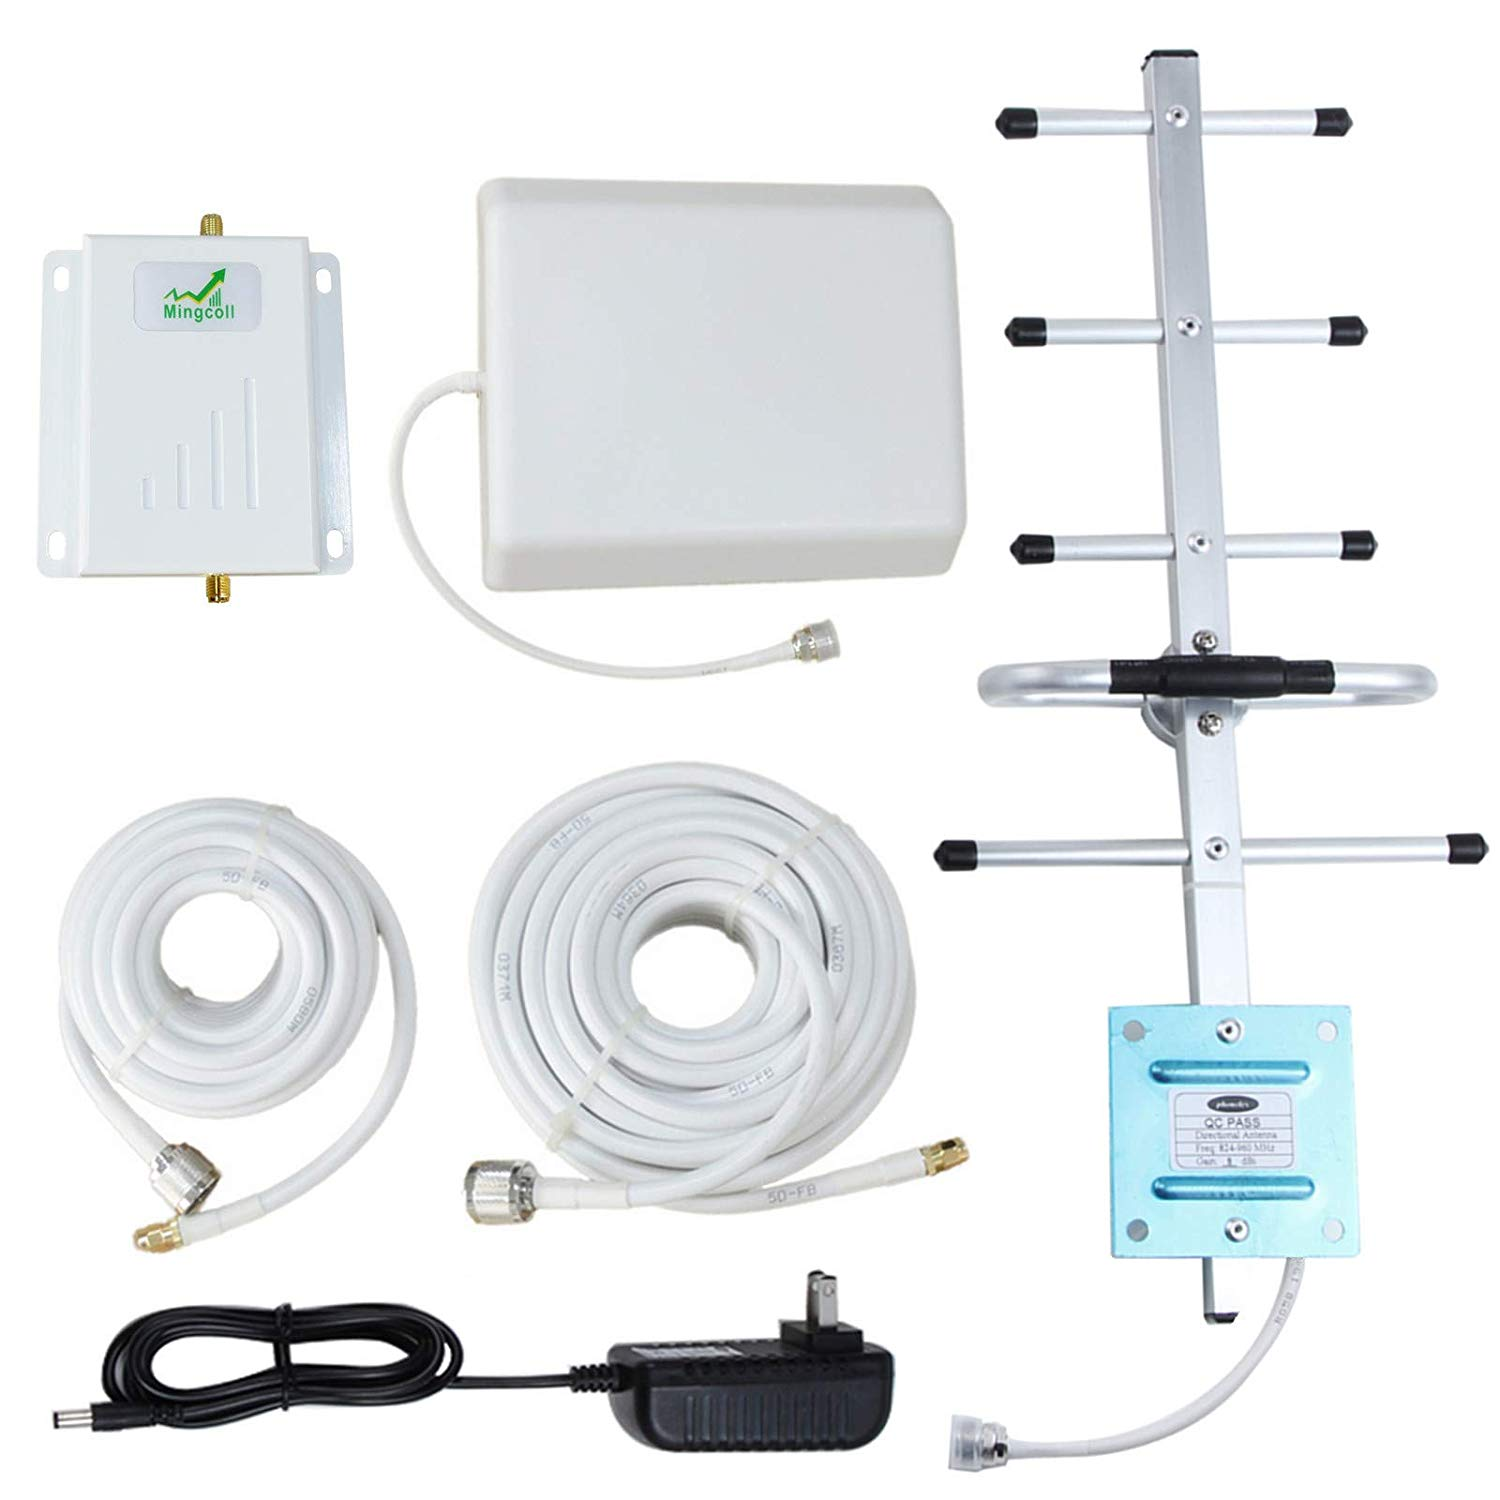 Mobile Cell Signal Booster Repeater Mingcoll Verizon Cell Phone 4G LTE Signal Booster High Gain 700MHz Band 13 Cell Phone Signal Booster Amplifier (WV70-VPQ)